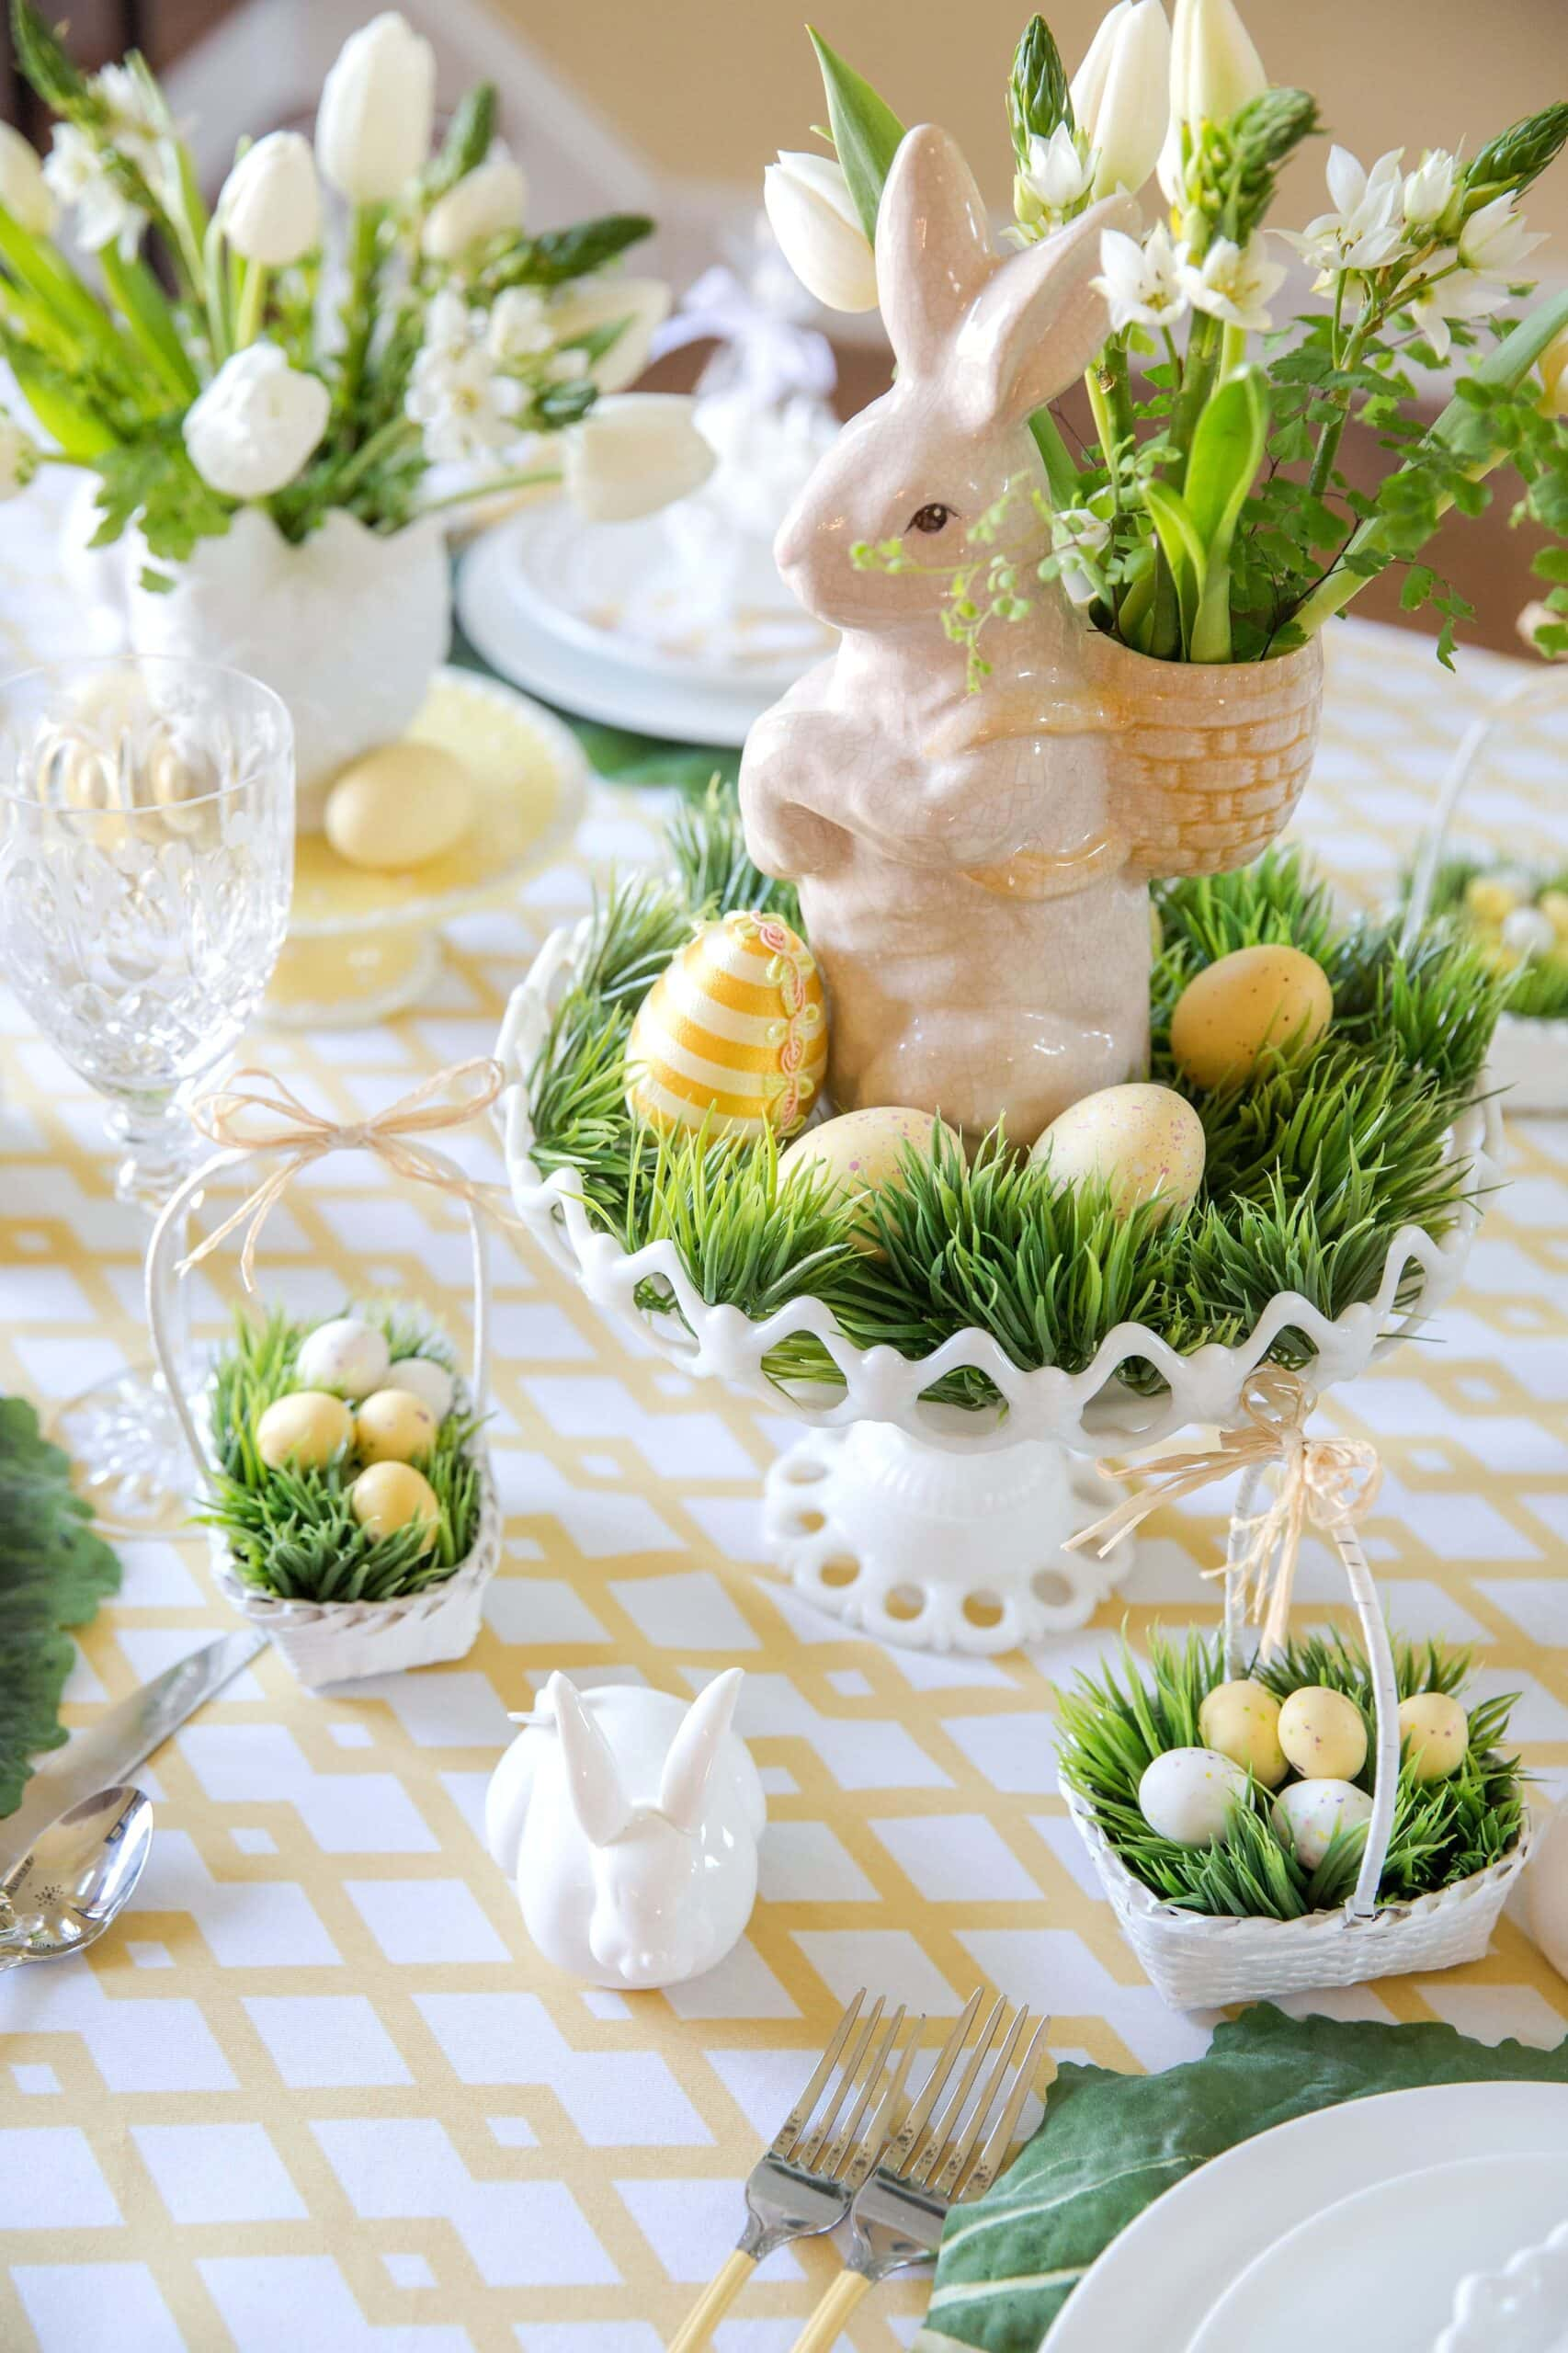 The Ultimate Guide to Easter Tablescapes